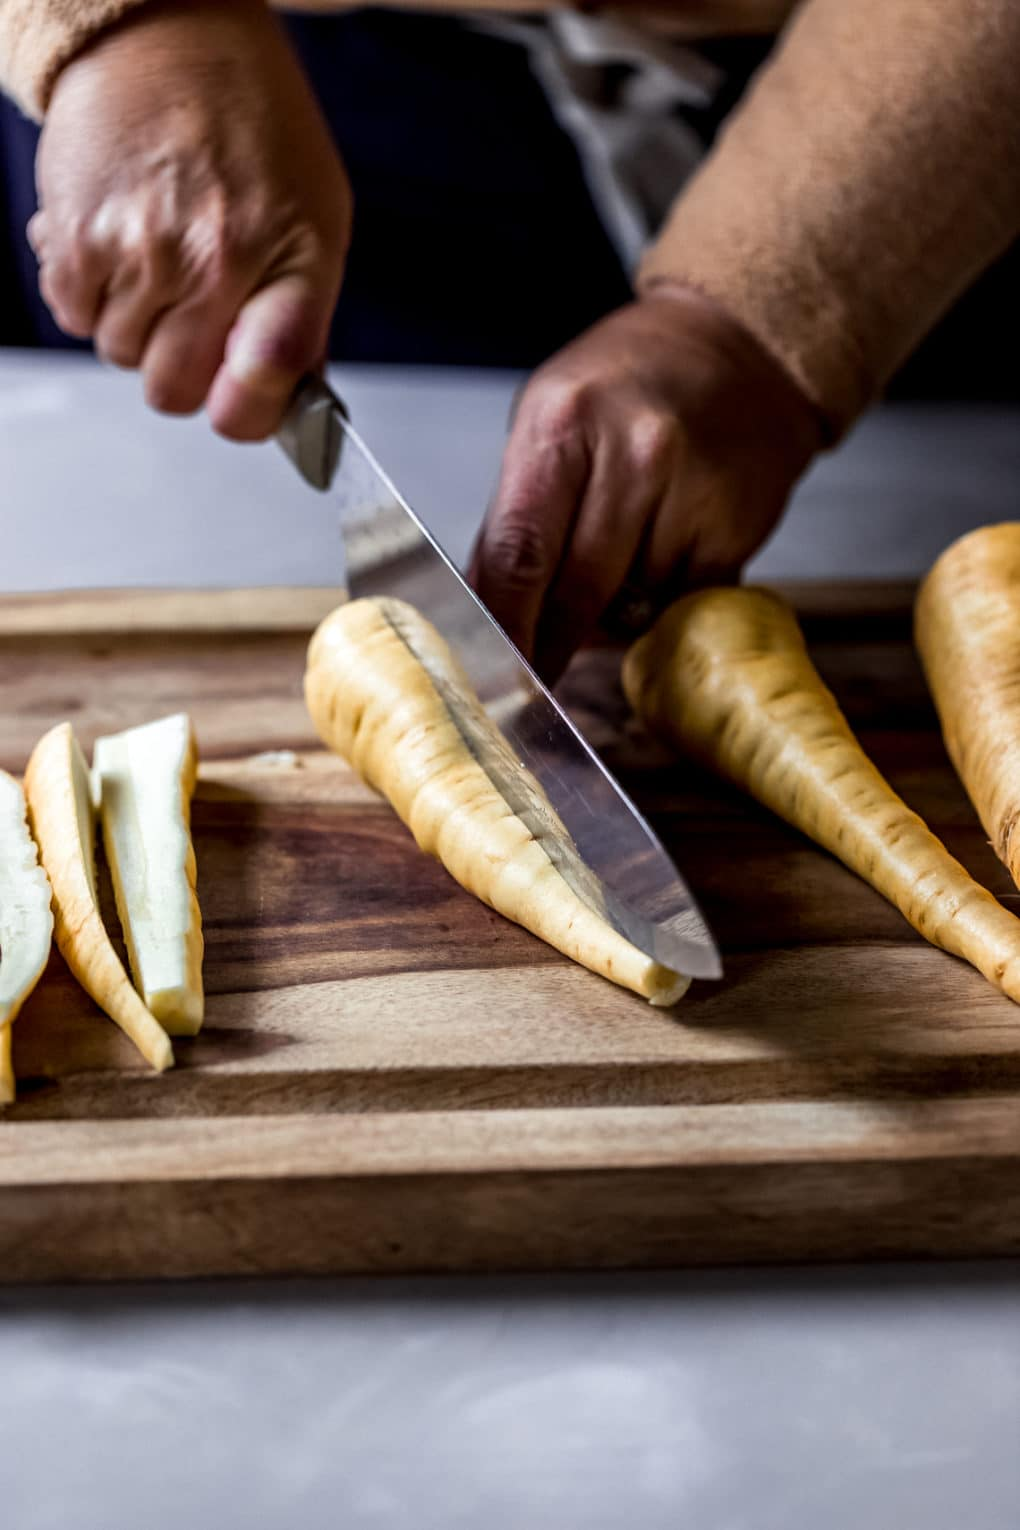 a woman slicing fresh parsnips on a cutting board